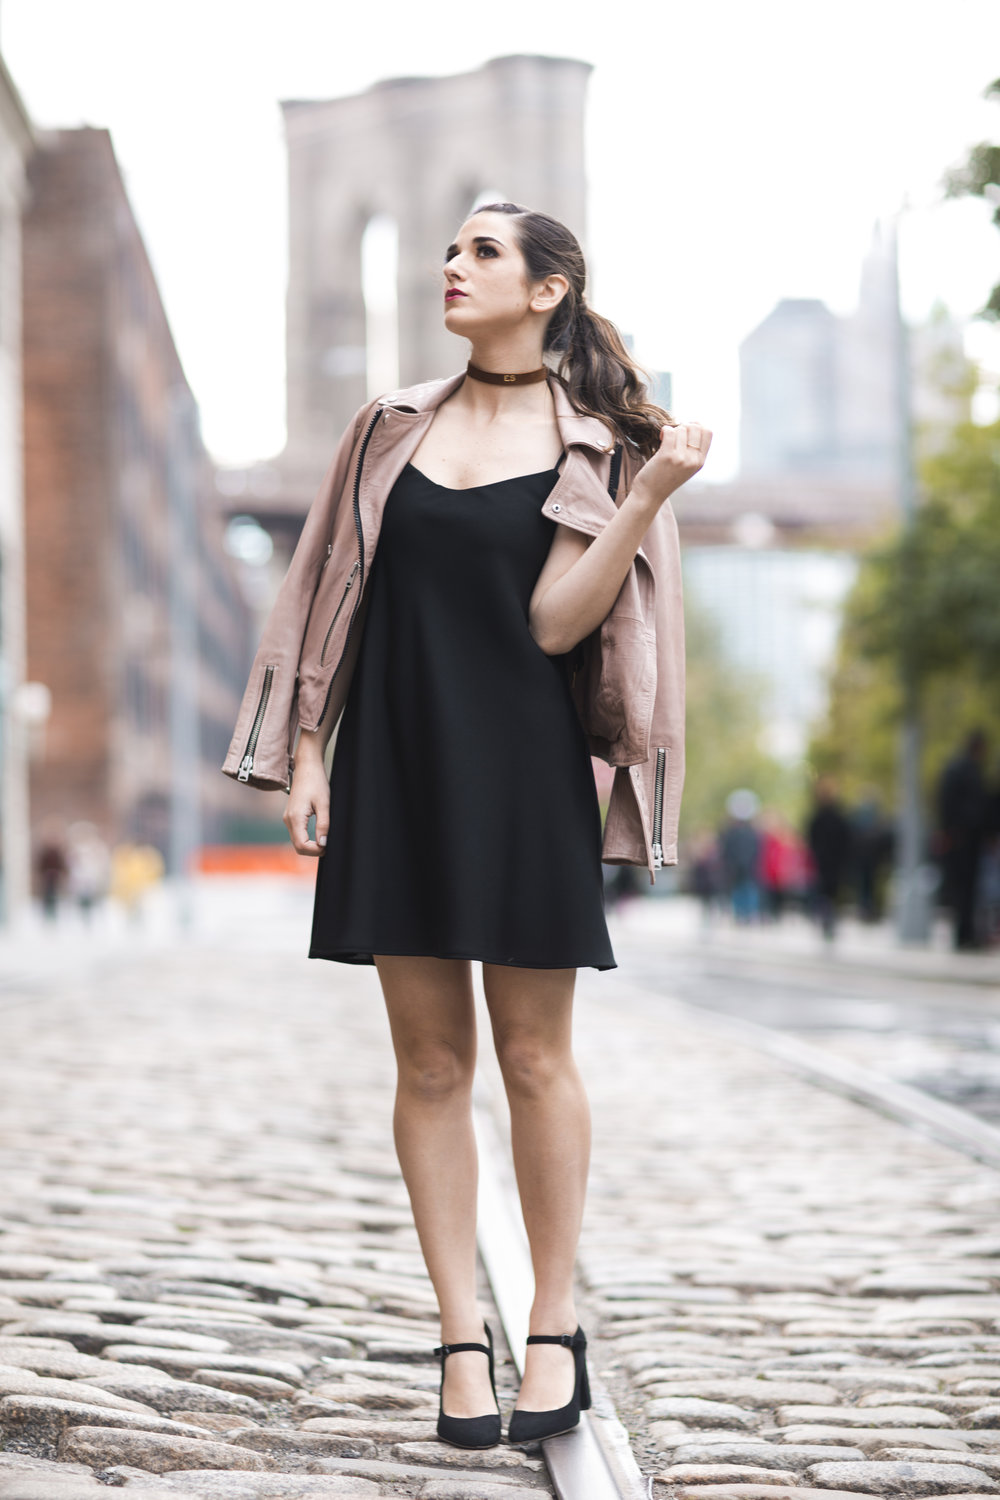 Pink Leather Jacket Erin Dana Choker Louboutins & Love Fashion Blog Esther Santer NYC Street Style Blogger Outfit OOTD Trendy All Saints Hair Inspo Fall Look Via Spiga Black Shoes Bloomingdales Slip Dress Pretty Model Women Girl Shop Dumbo Accessories.jpg